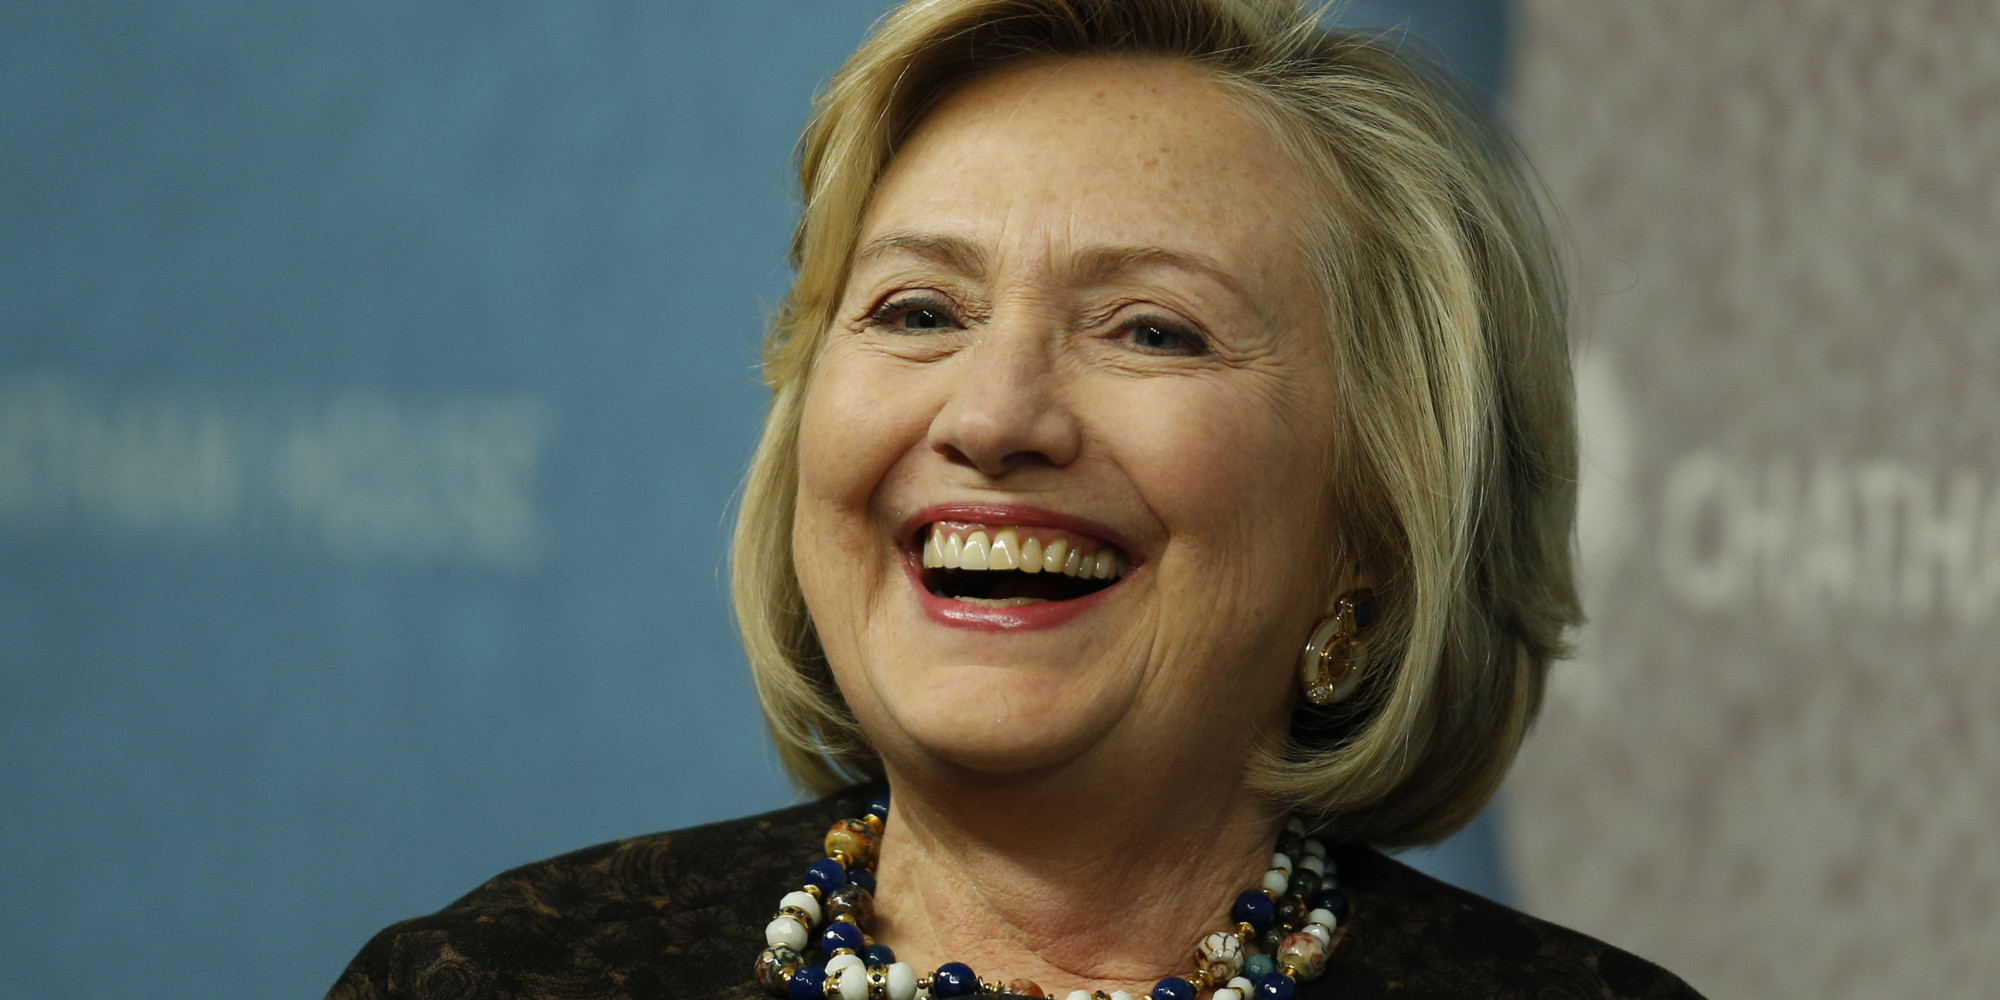 This week, Hillary Rodham Clinton, former U.S. Secretary of State representing the Obama Administration, became the first ever female nominee of a major political party for the presidency of the United States of America.